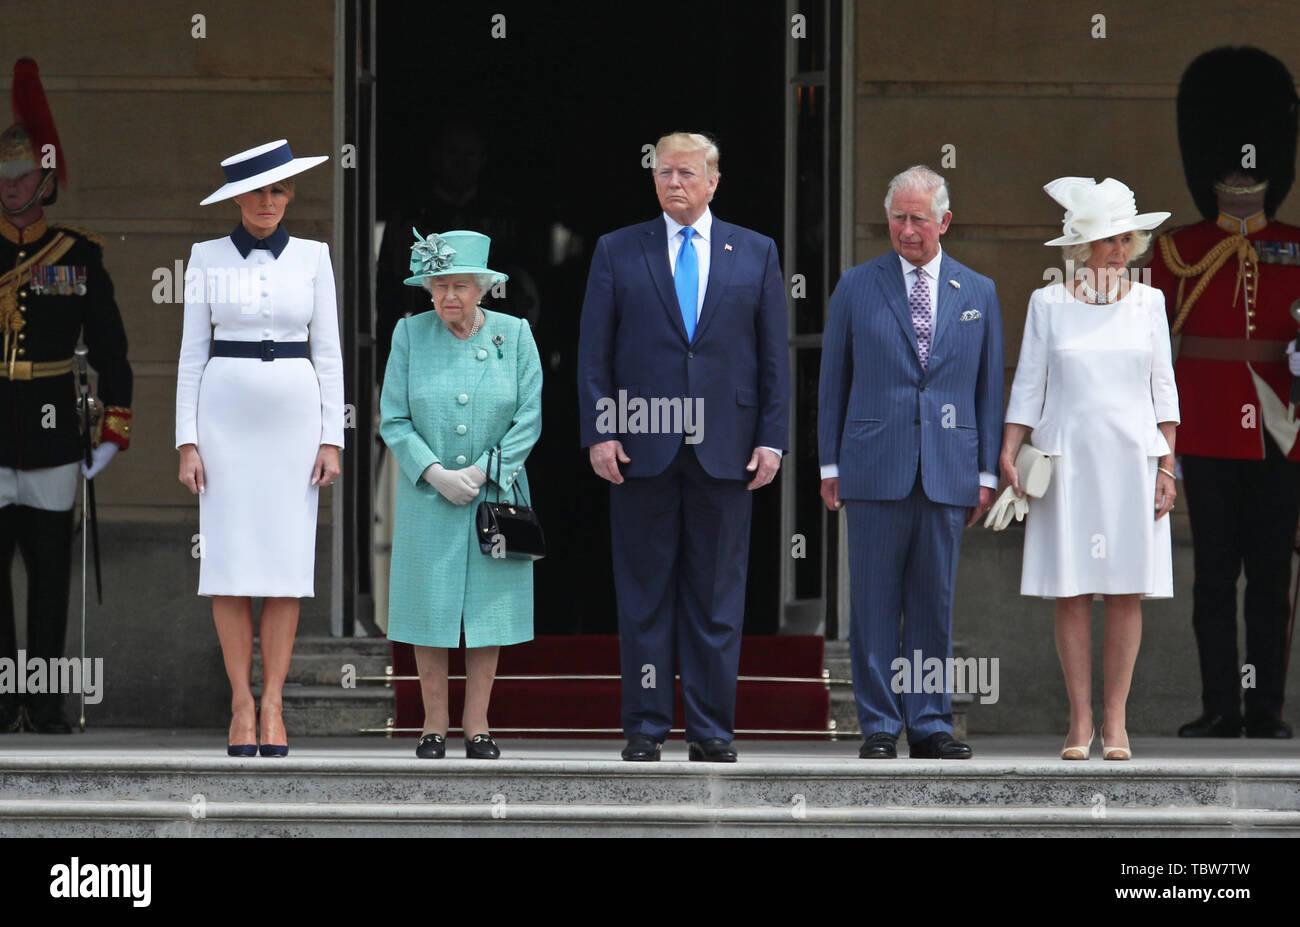 US President Donald Trump and his wife Melania are welcomed